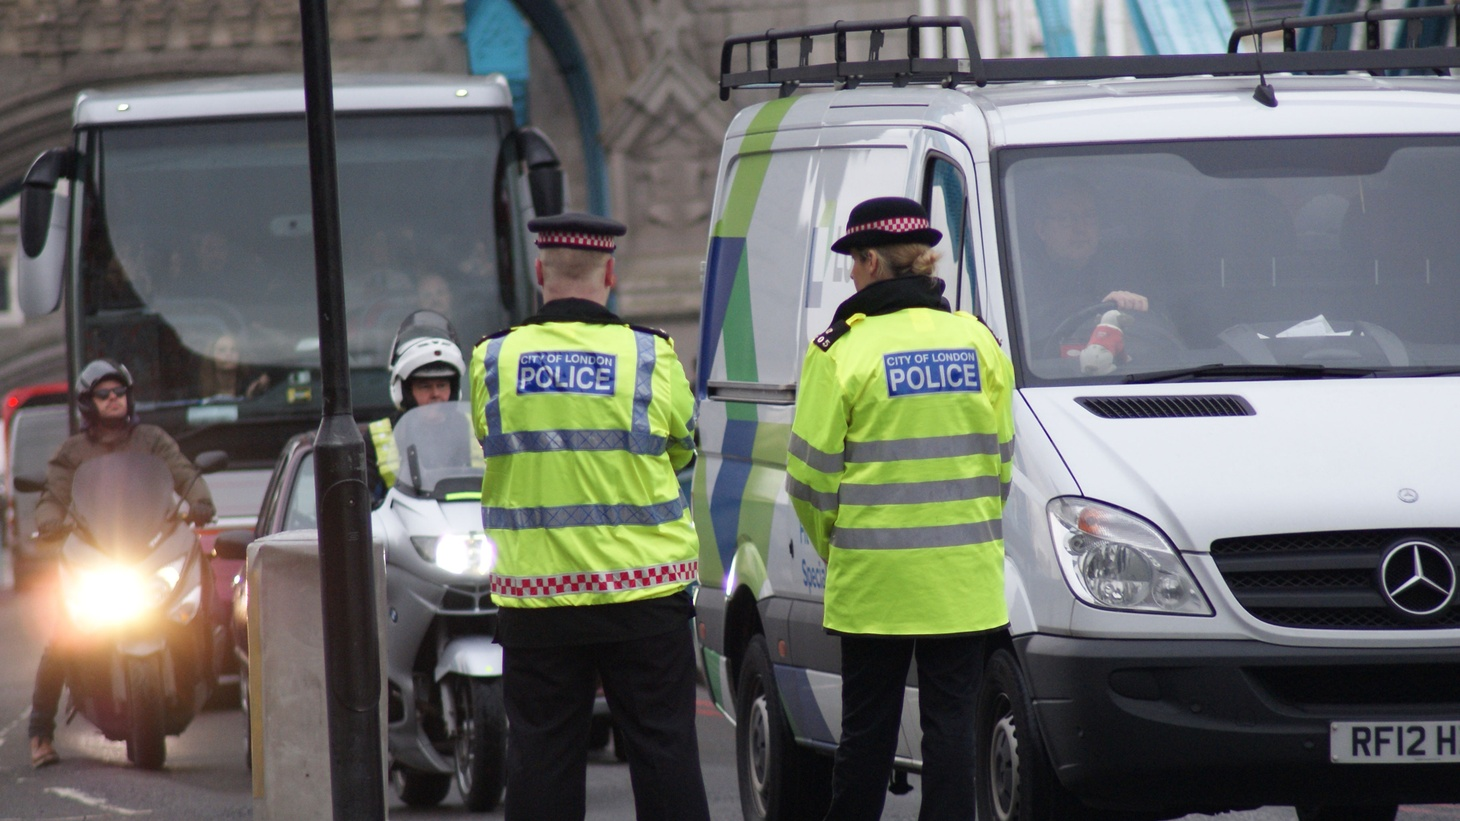 """Just days before an election, Britain is coping with a rash of deadly terrorism, and Prime Minister Theresa May is on the defensive. And again today, President Trump has tweeted criticism of the Mayor of London. Later, a double murder in Portland, Oregon has revealed the ugly past of a supposedly """"progressive"""" city. One immediate question: is """"hate speech"""" protected by the First Amendment?"""